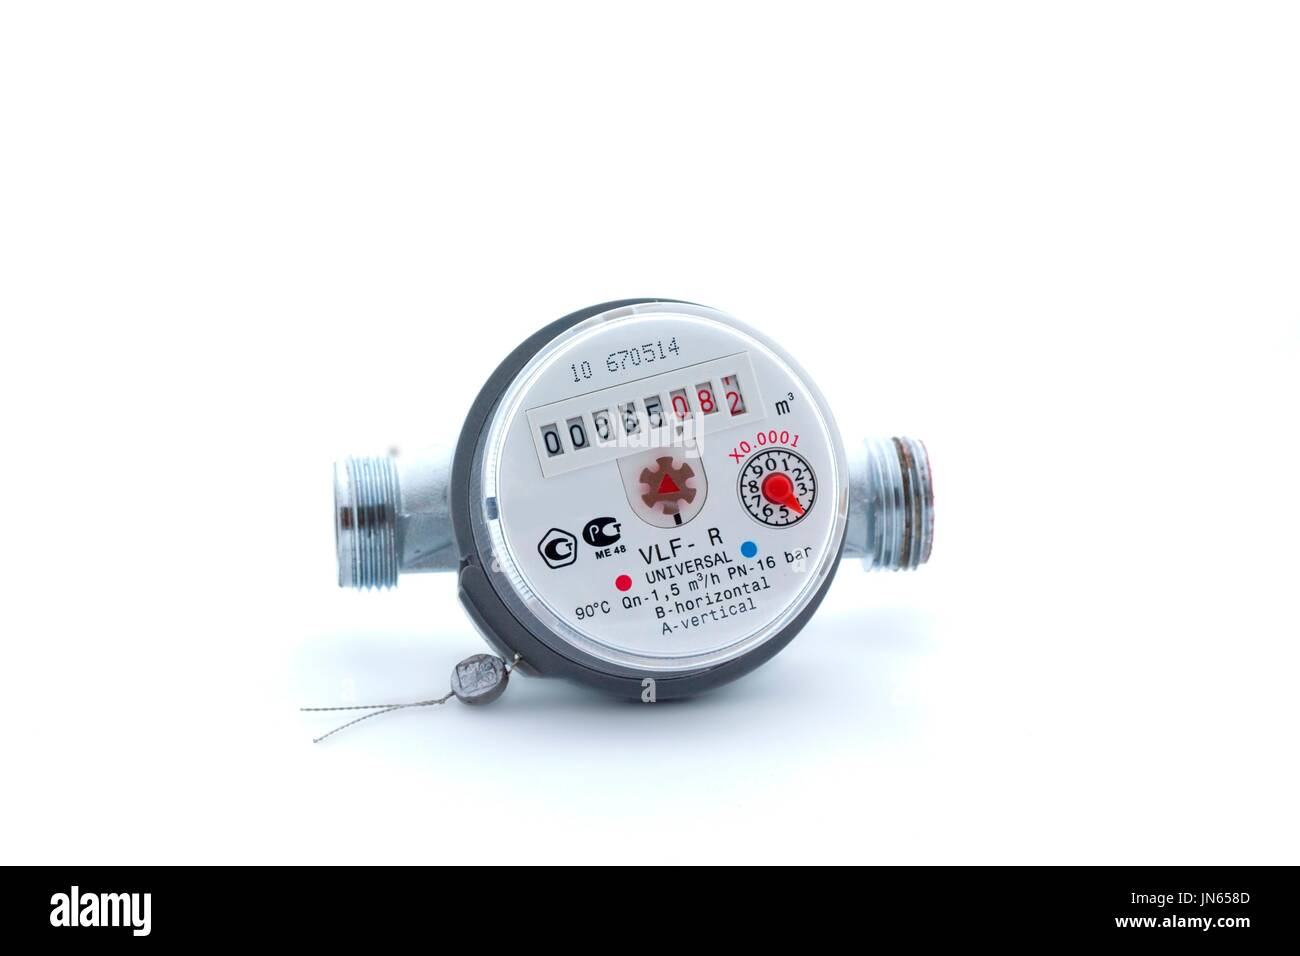 Used water meter isolated on white background - Stock Image